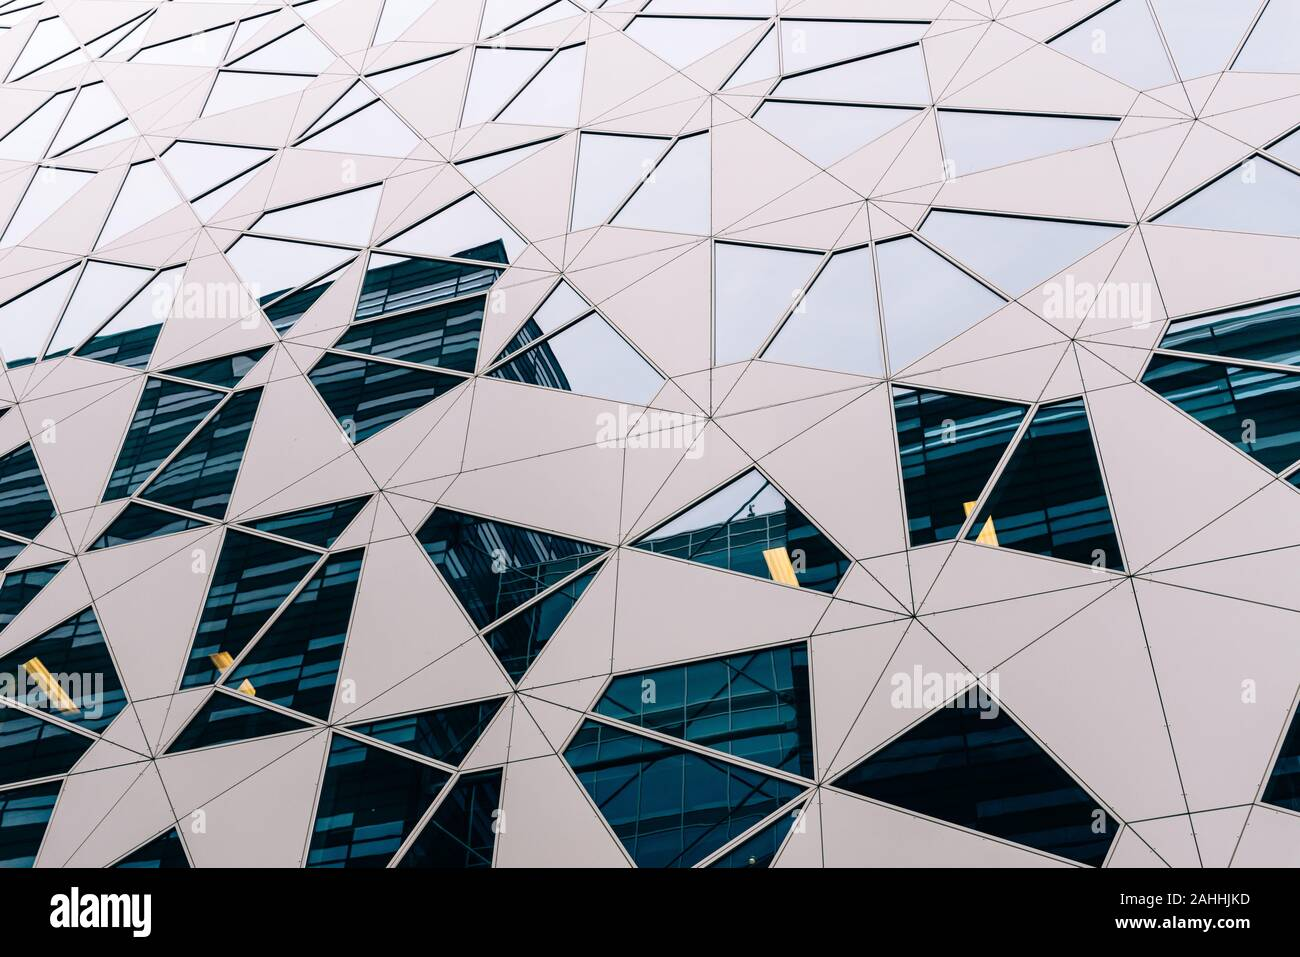 Oslo, Norway - August 11, 2019: Low angle view of modern curtain wall facade in Barcode Project area. Stock Photo